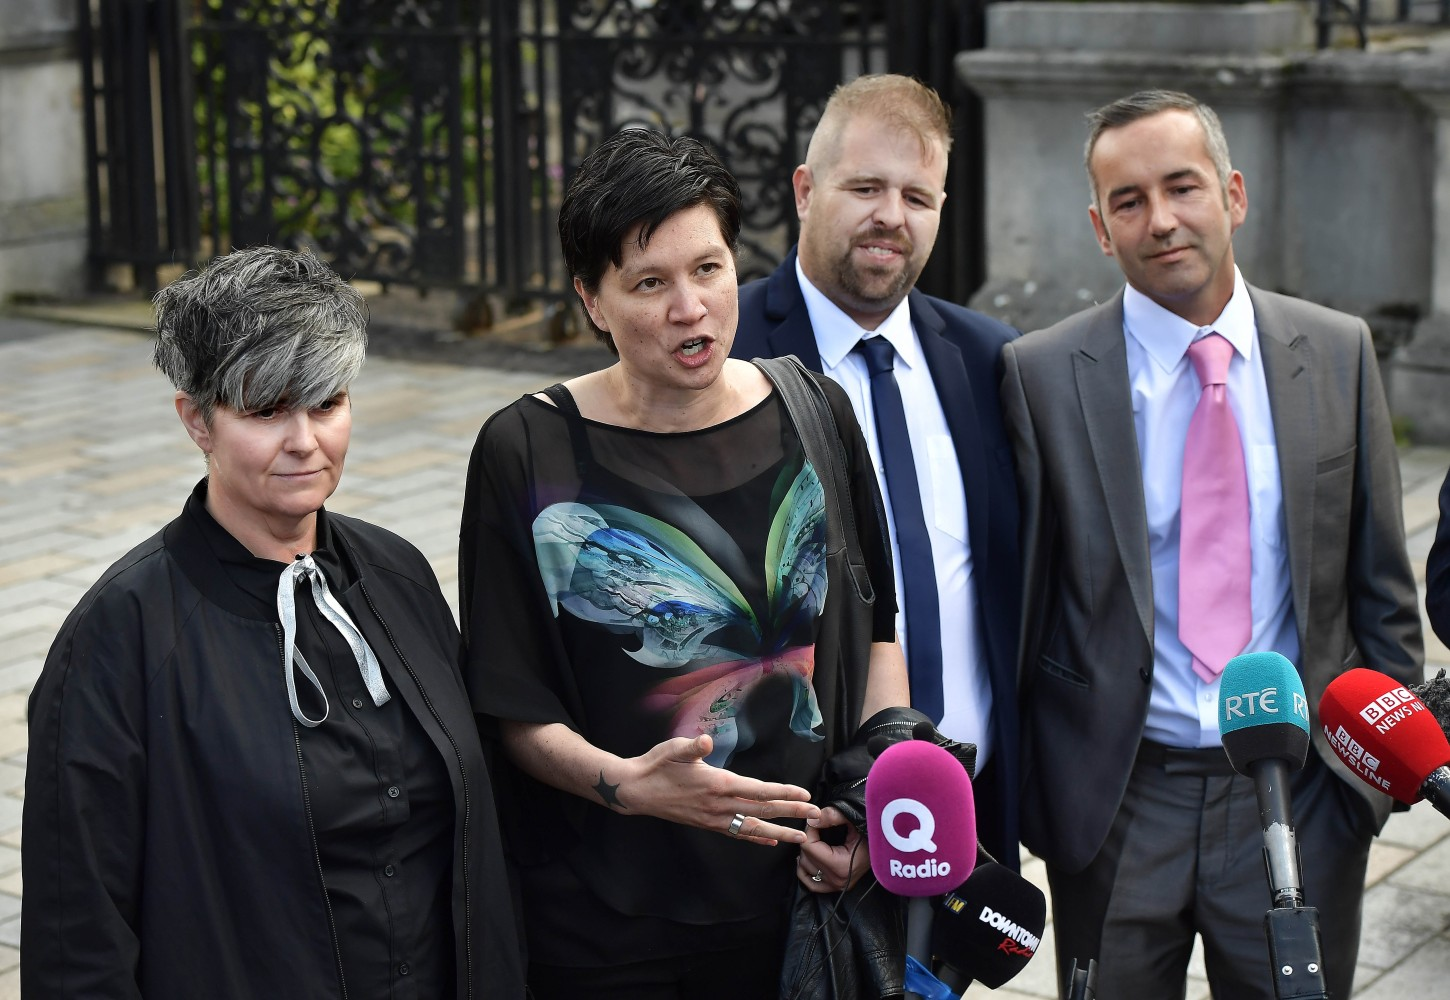 Court delivers blow to same-sex 'marriage' backers in Northern Ireland